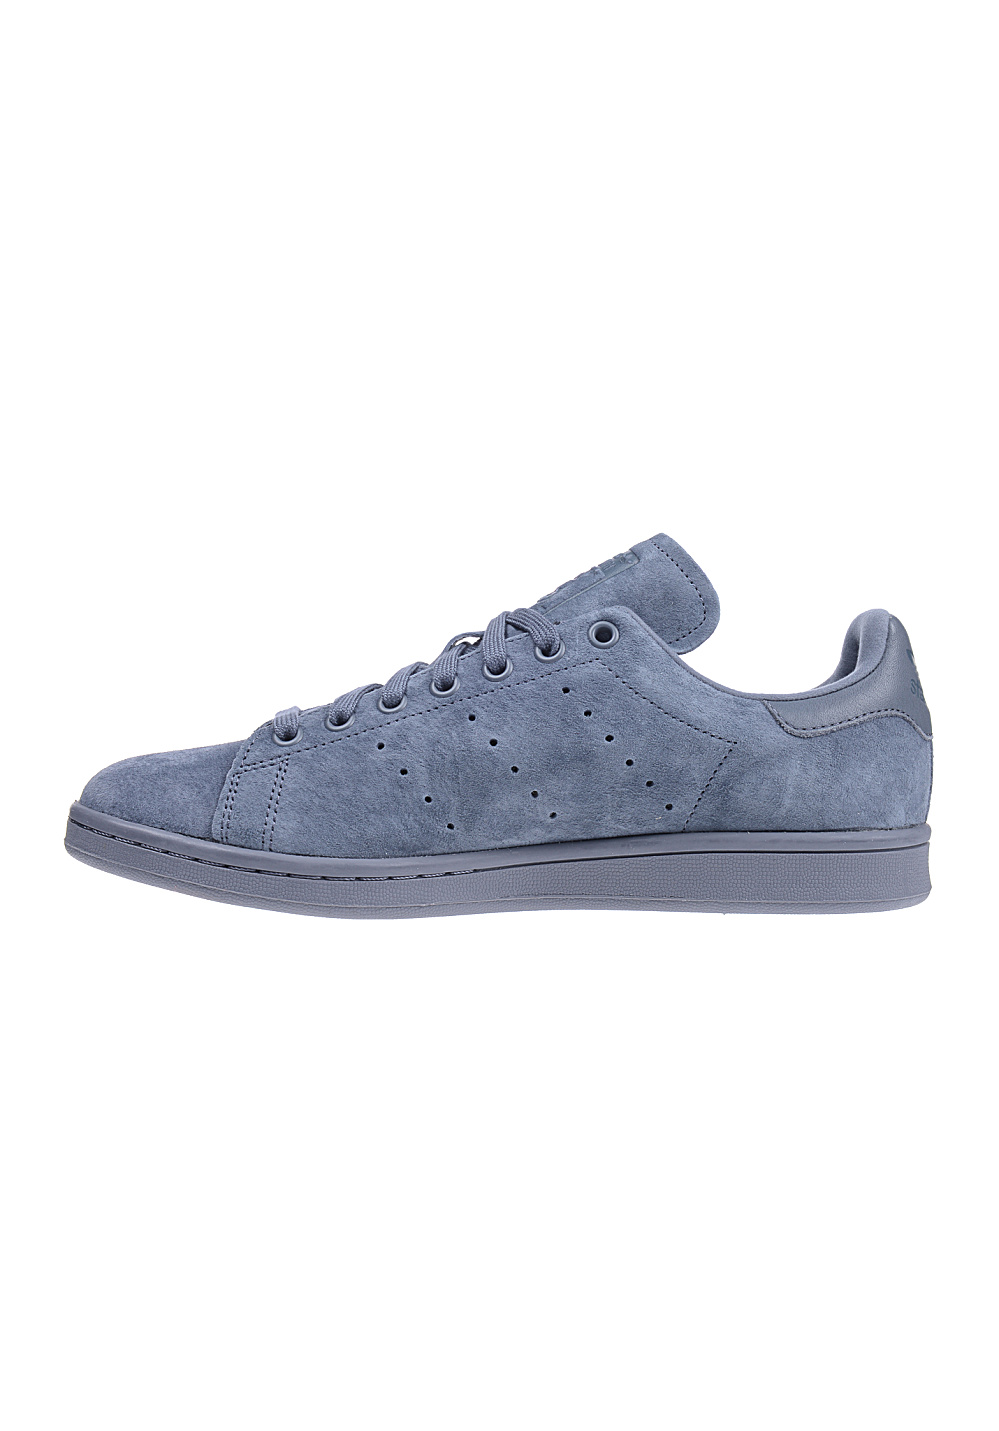 adidas originals stan smith grijs